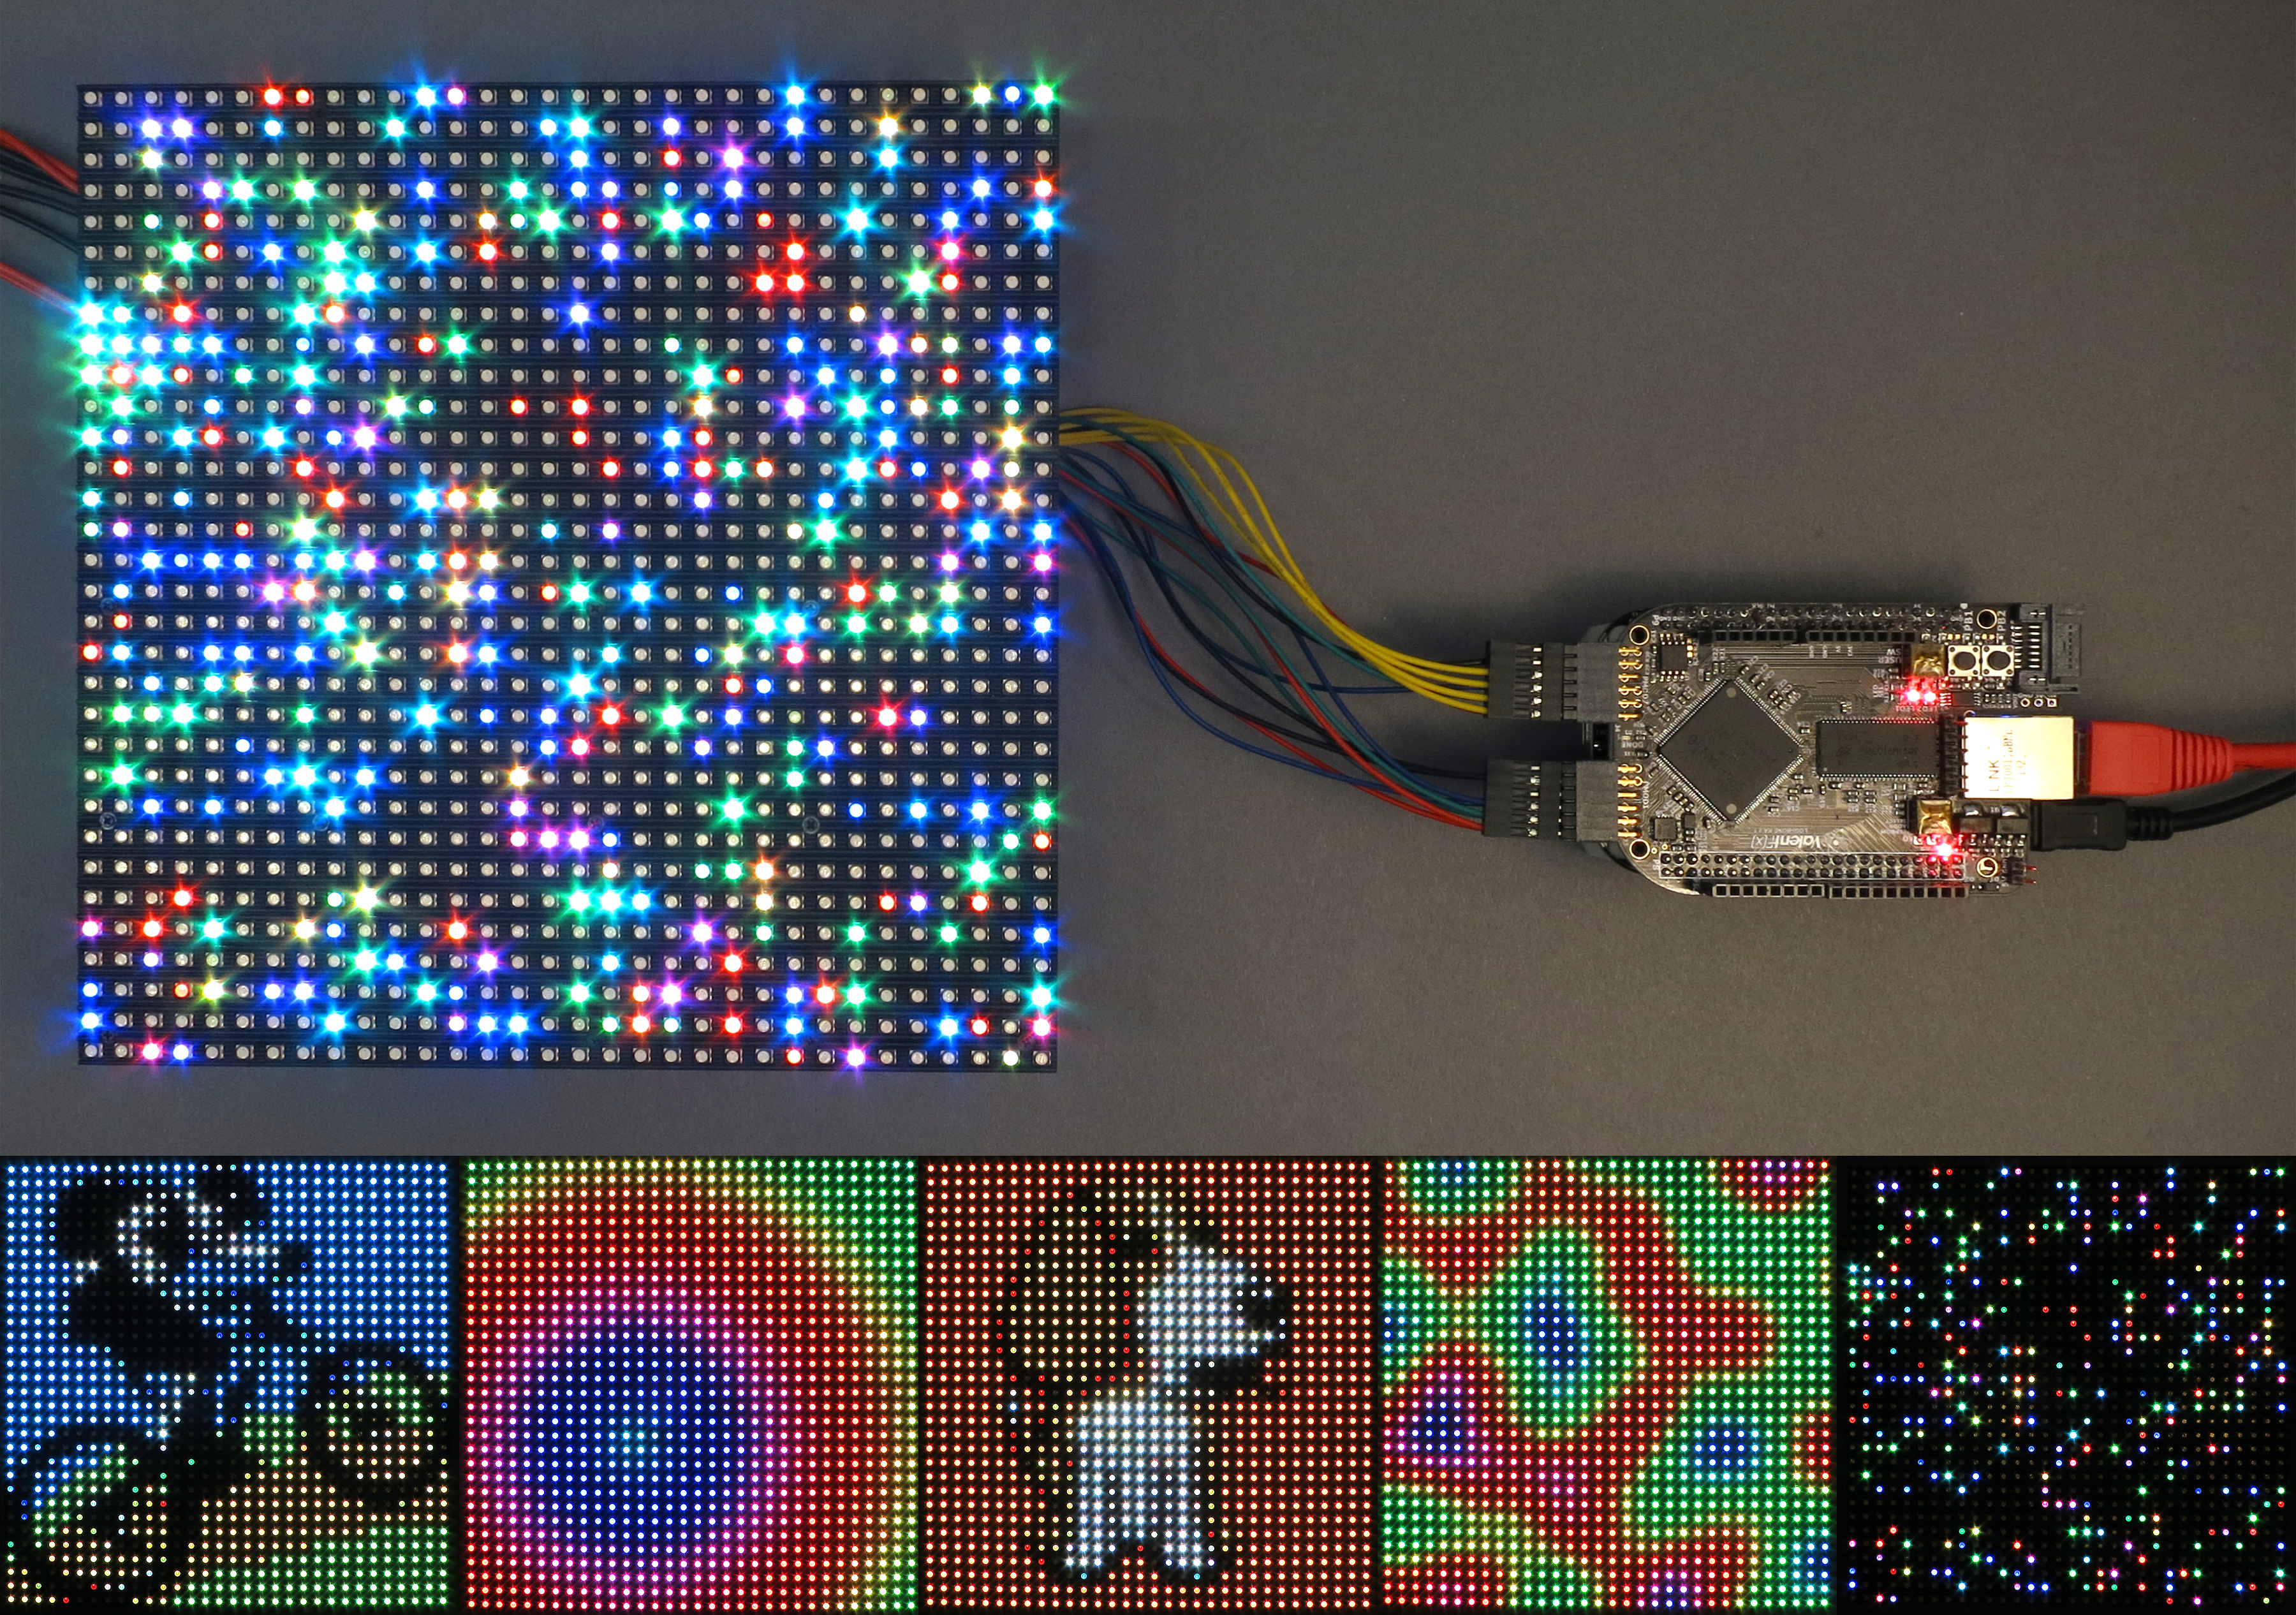 Led Light Display Software